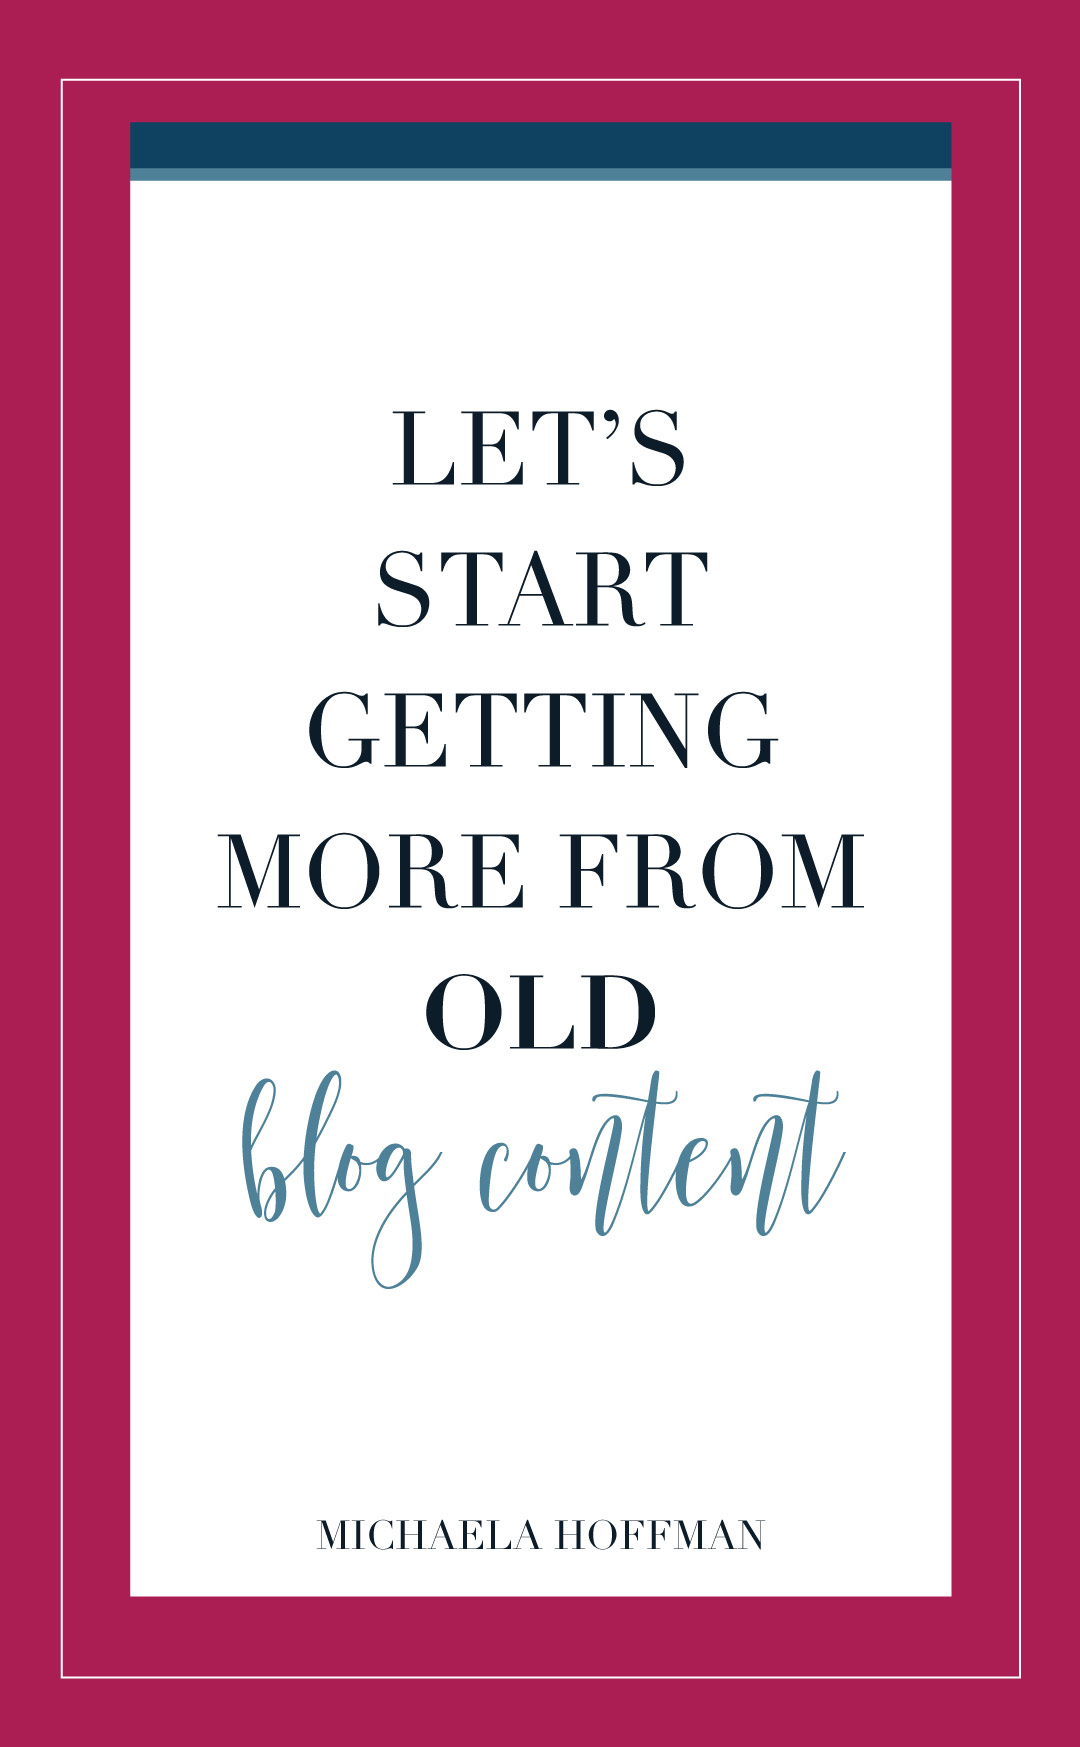 Do you hate creating content for your online business? Here is how I get more life out of my old blog content without having to create new content and stress out about yet another thing I need to do to grow my online business